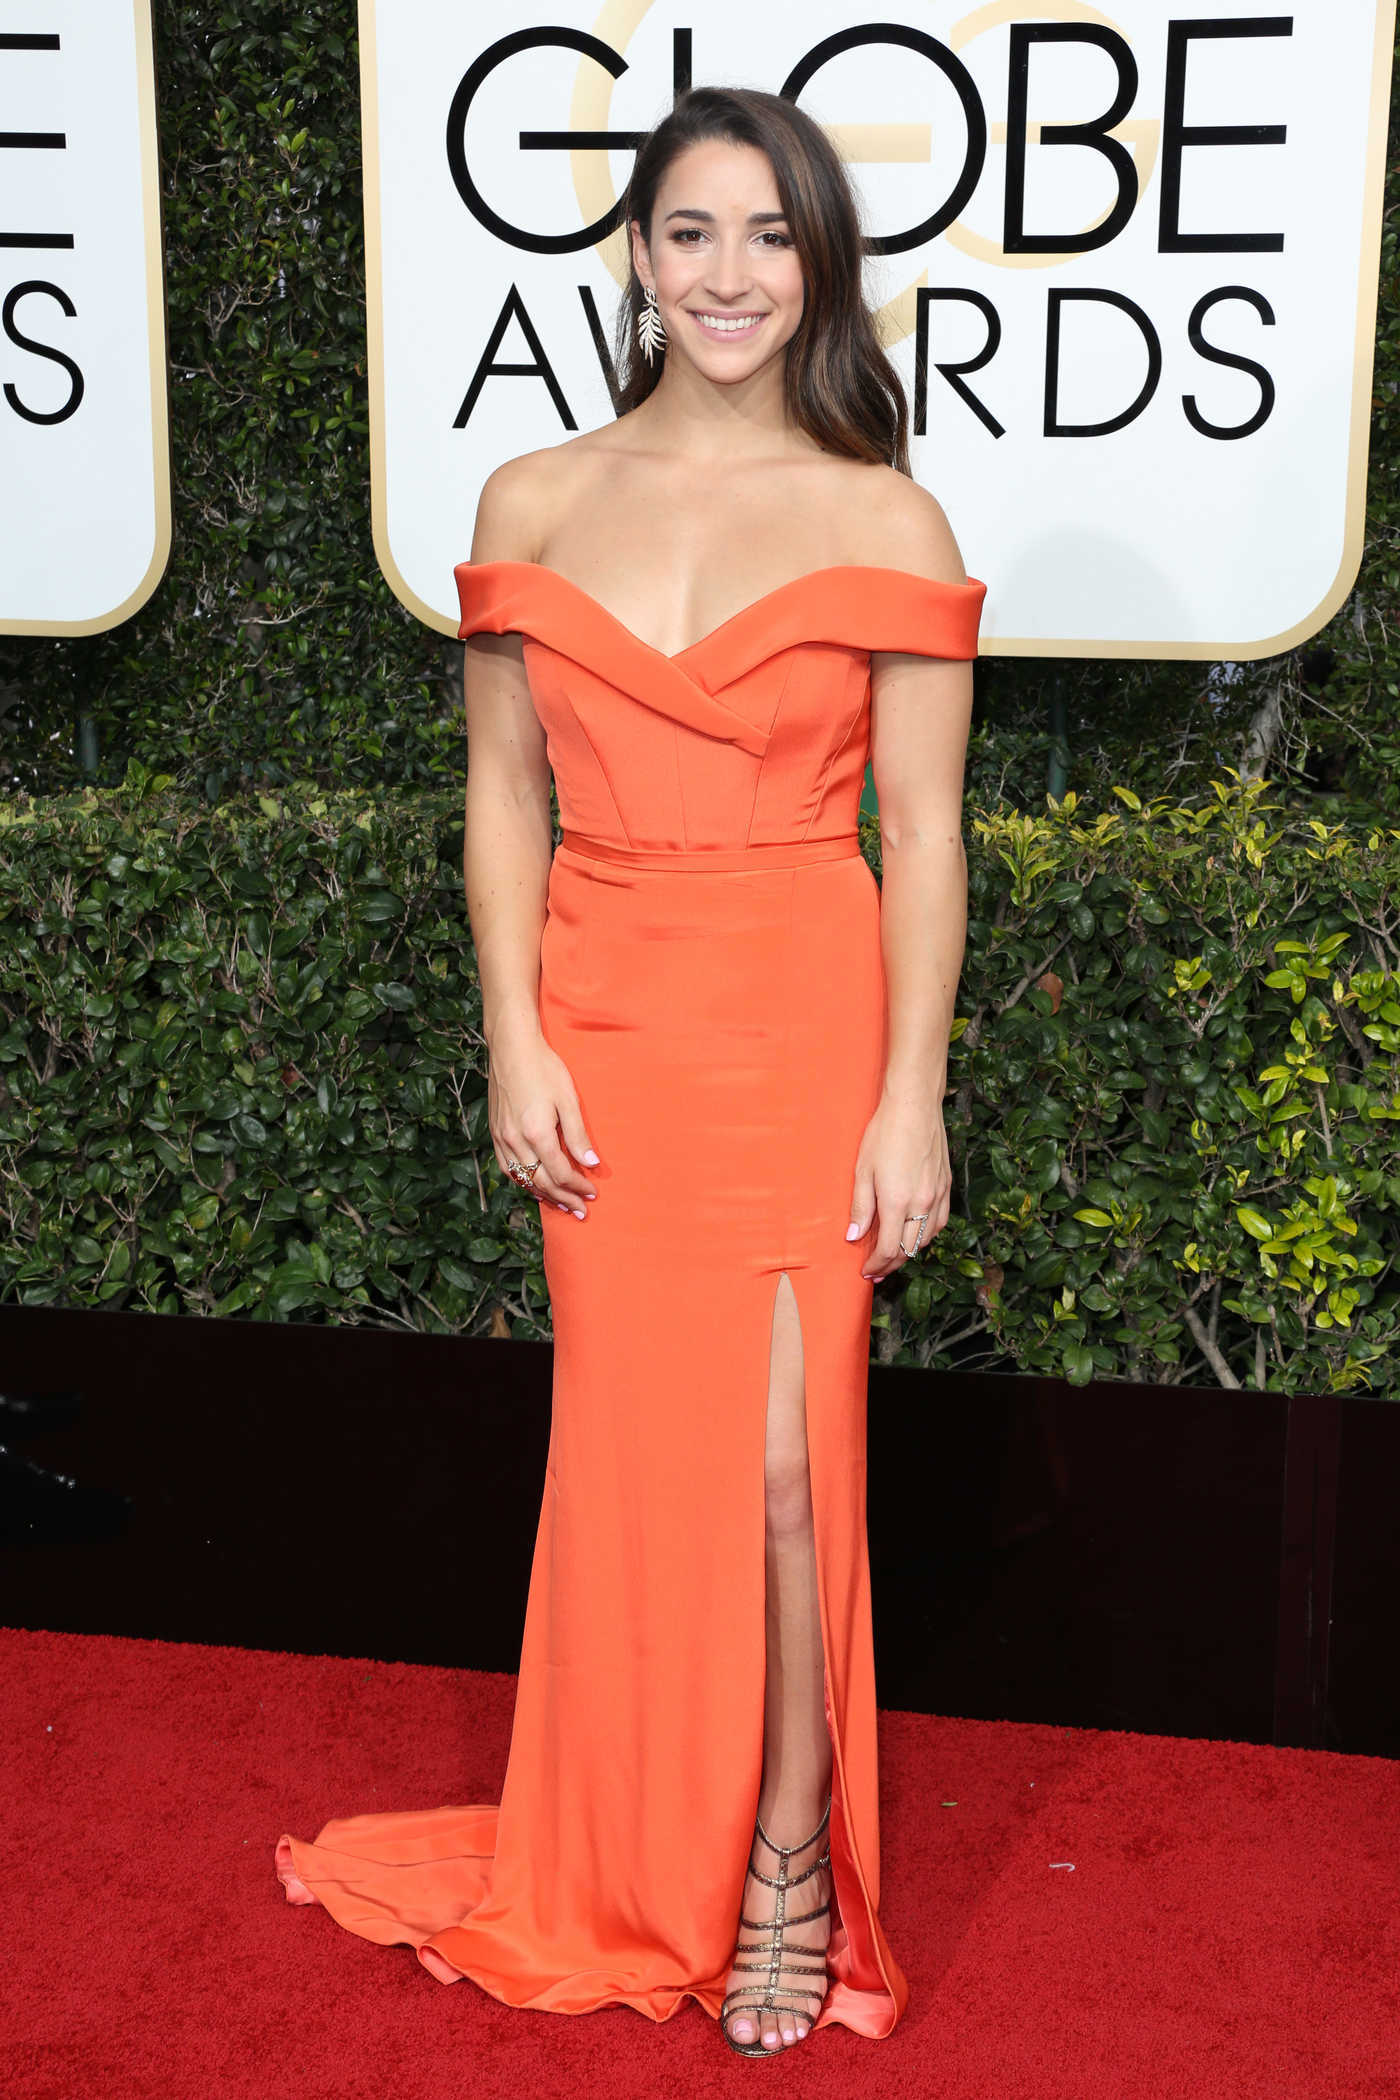 Aly Raisman at the 74th Annual Golden Globe Awards in Beverly Hills 01/08/2017